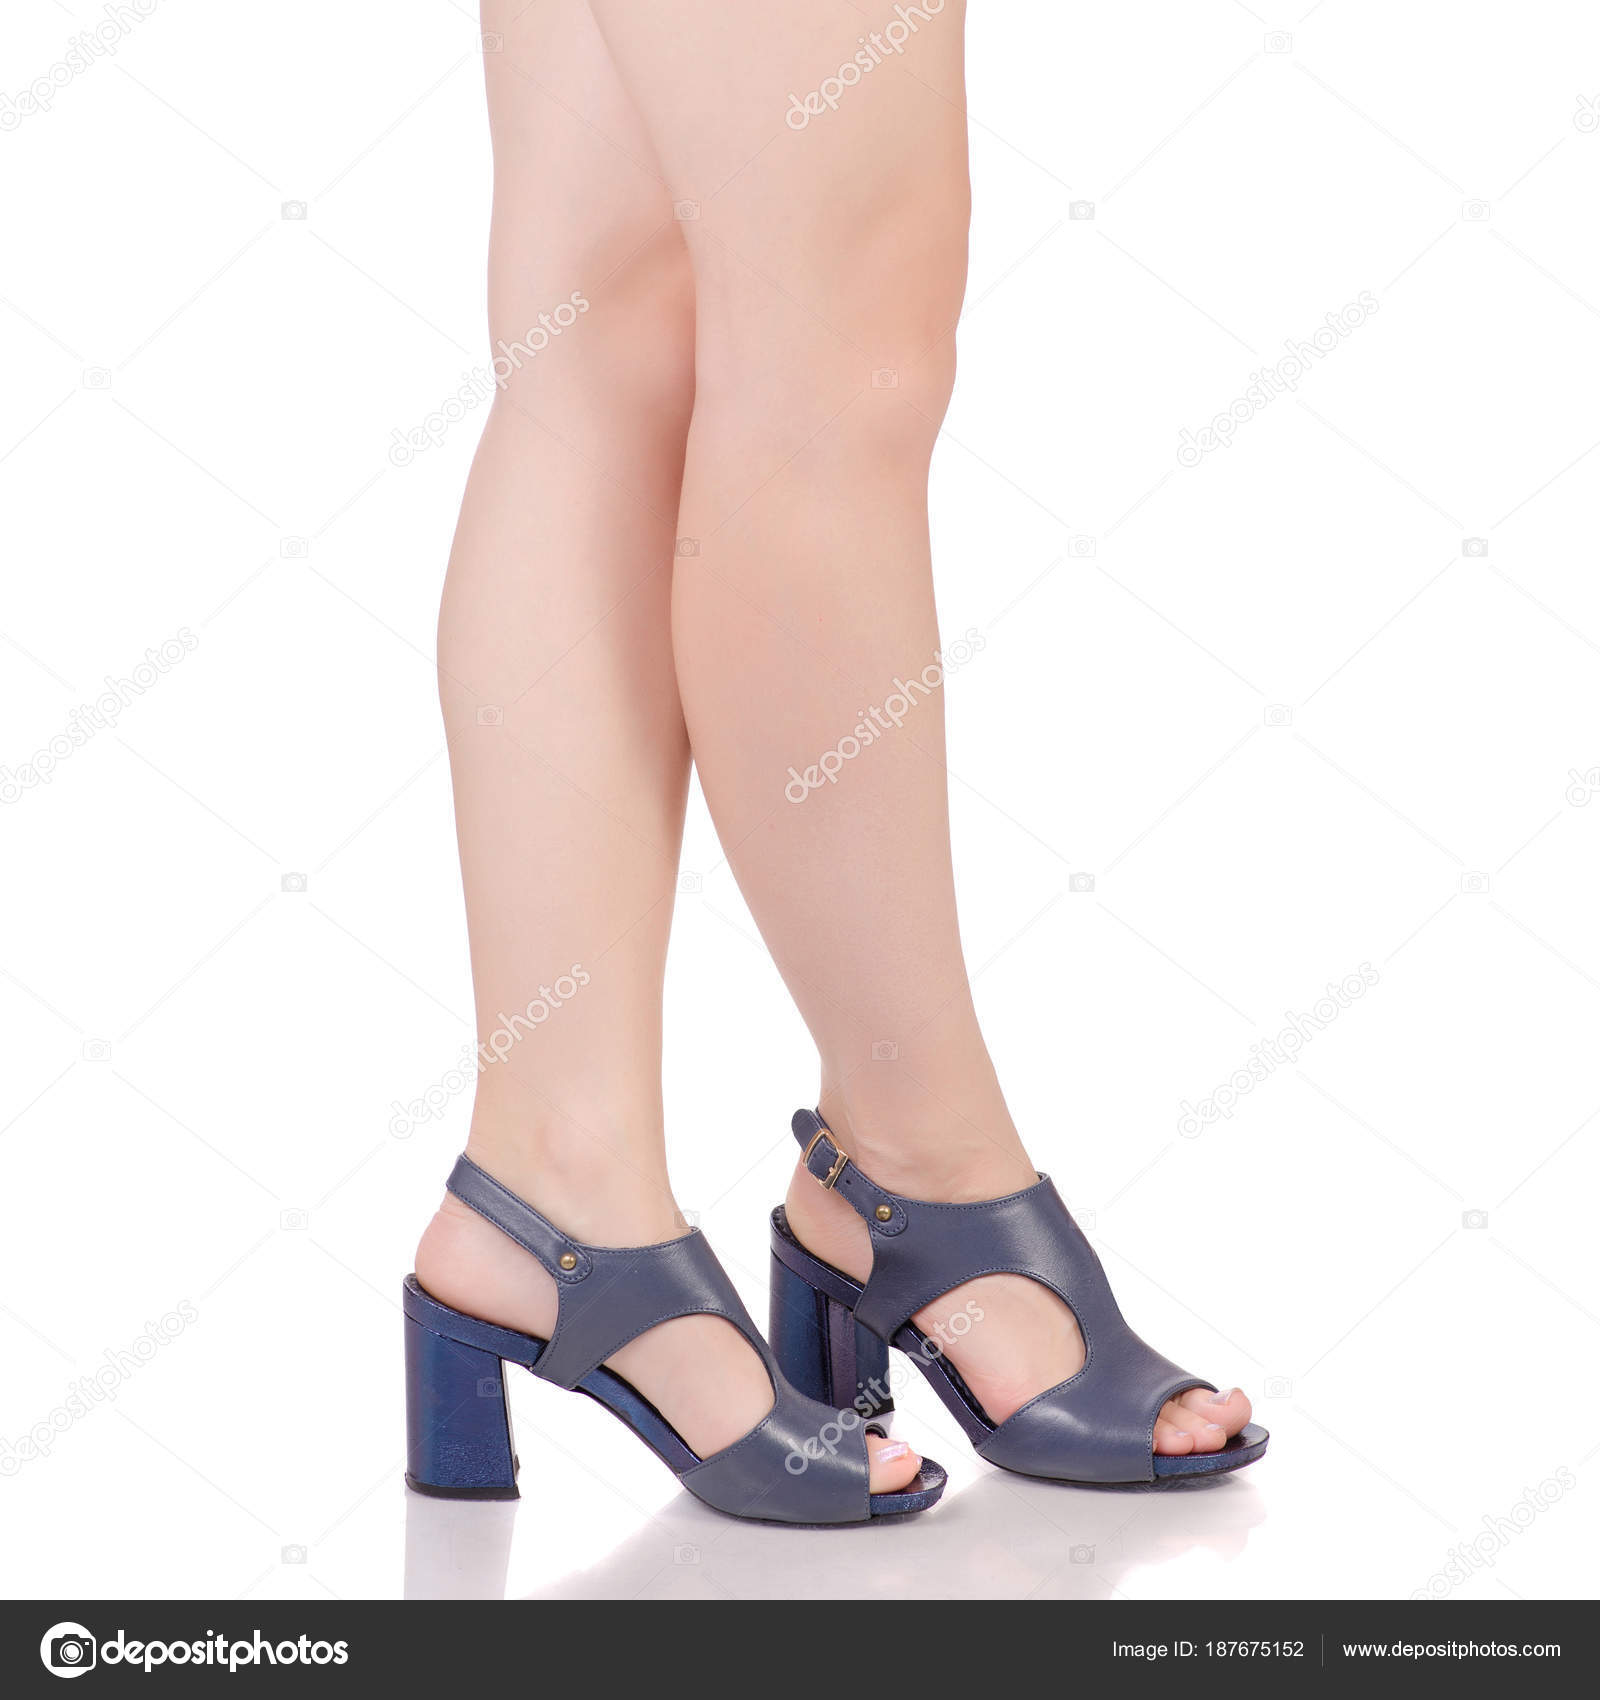 cf787acf7 Female legs in blue leather shoes sandals beauty fashion buy shop on white  background isolation — Photo by ...